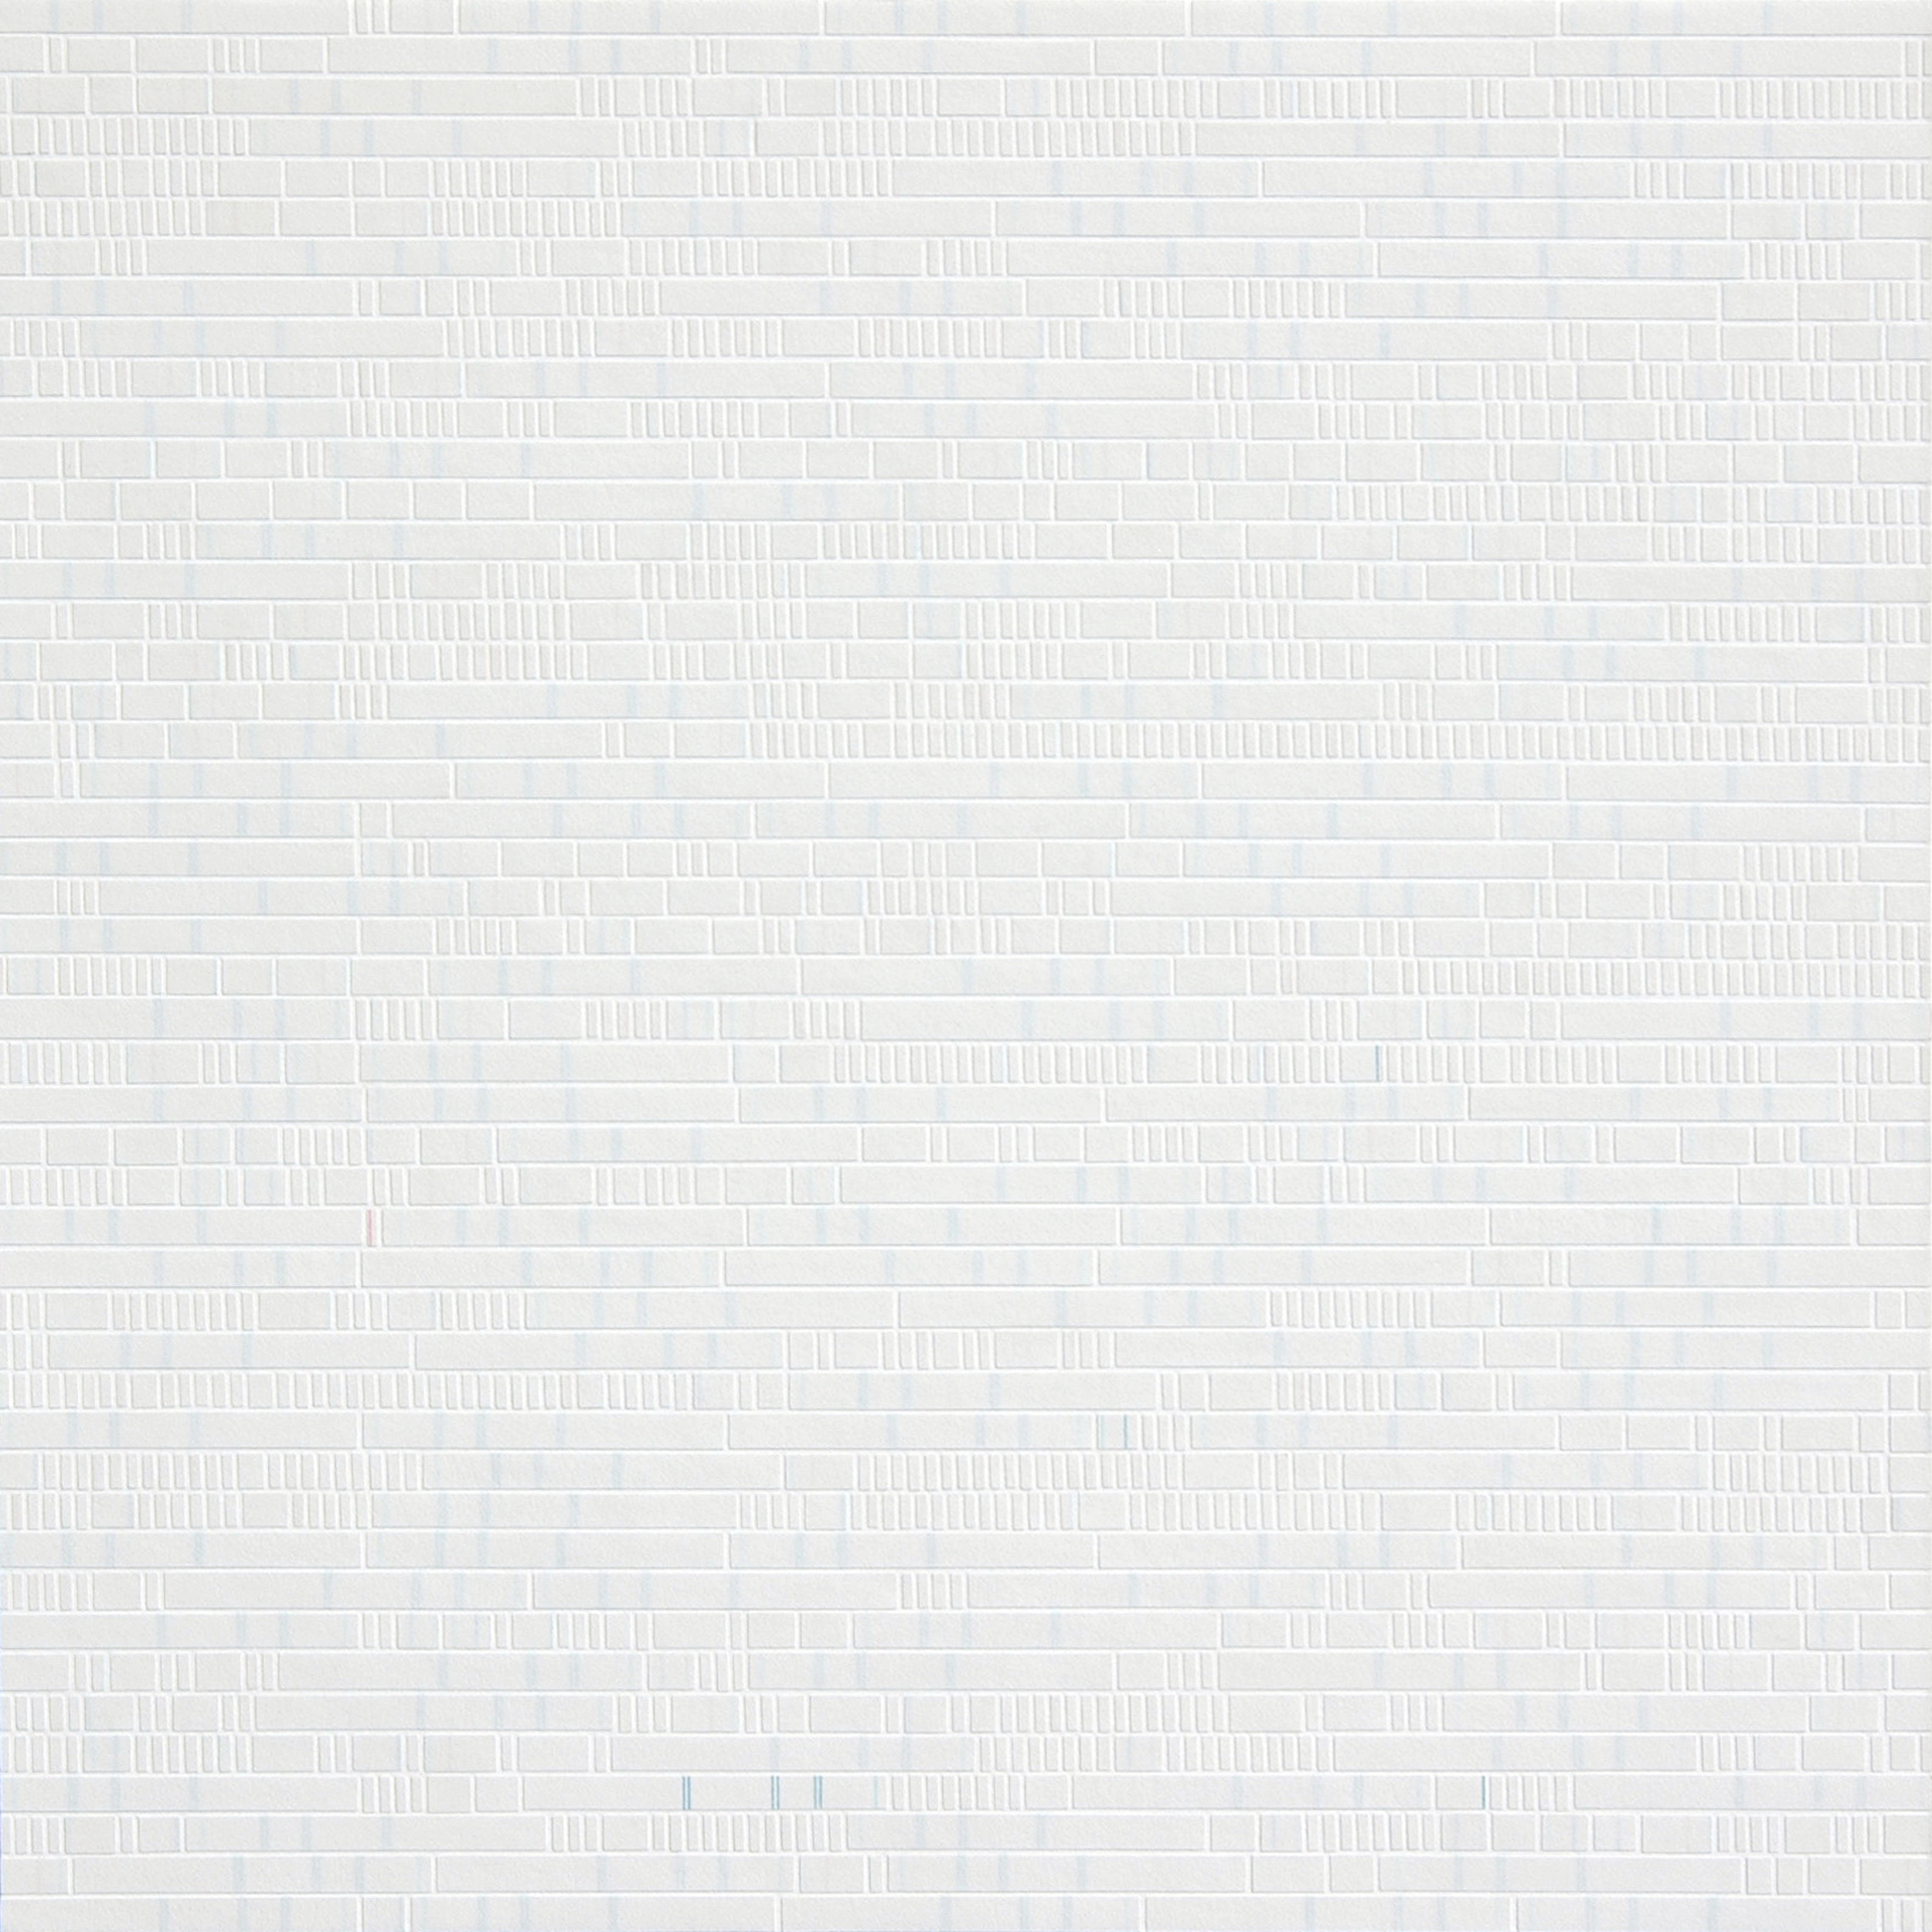 Untitled (Reconstruction White Series, 2)